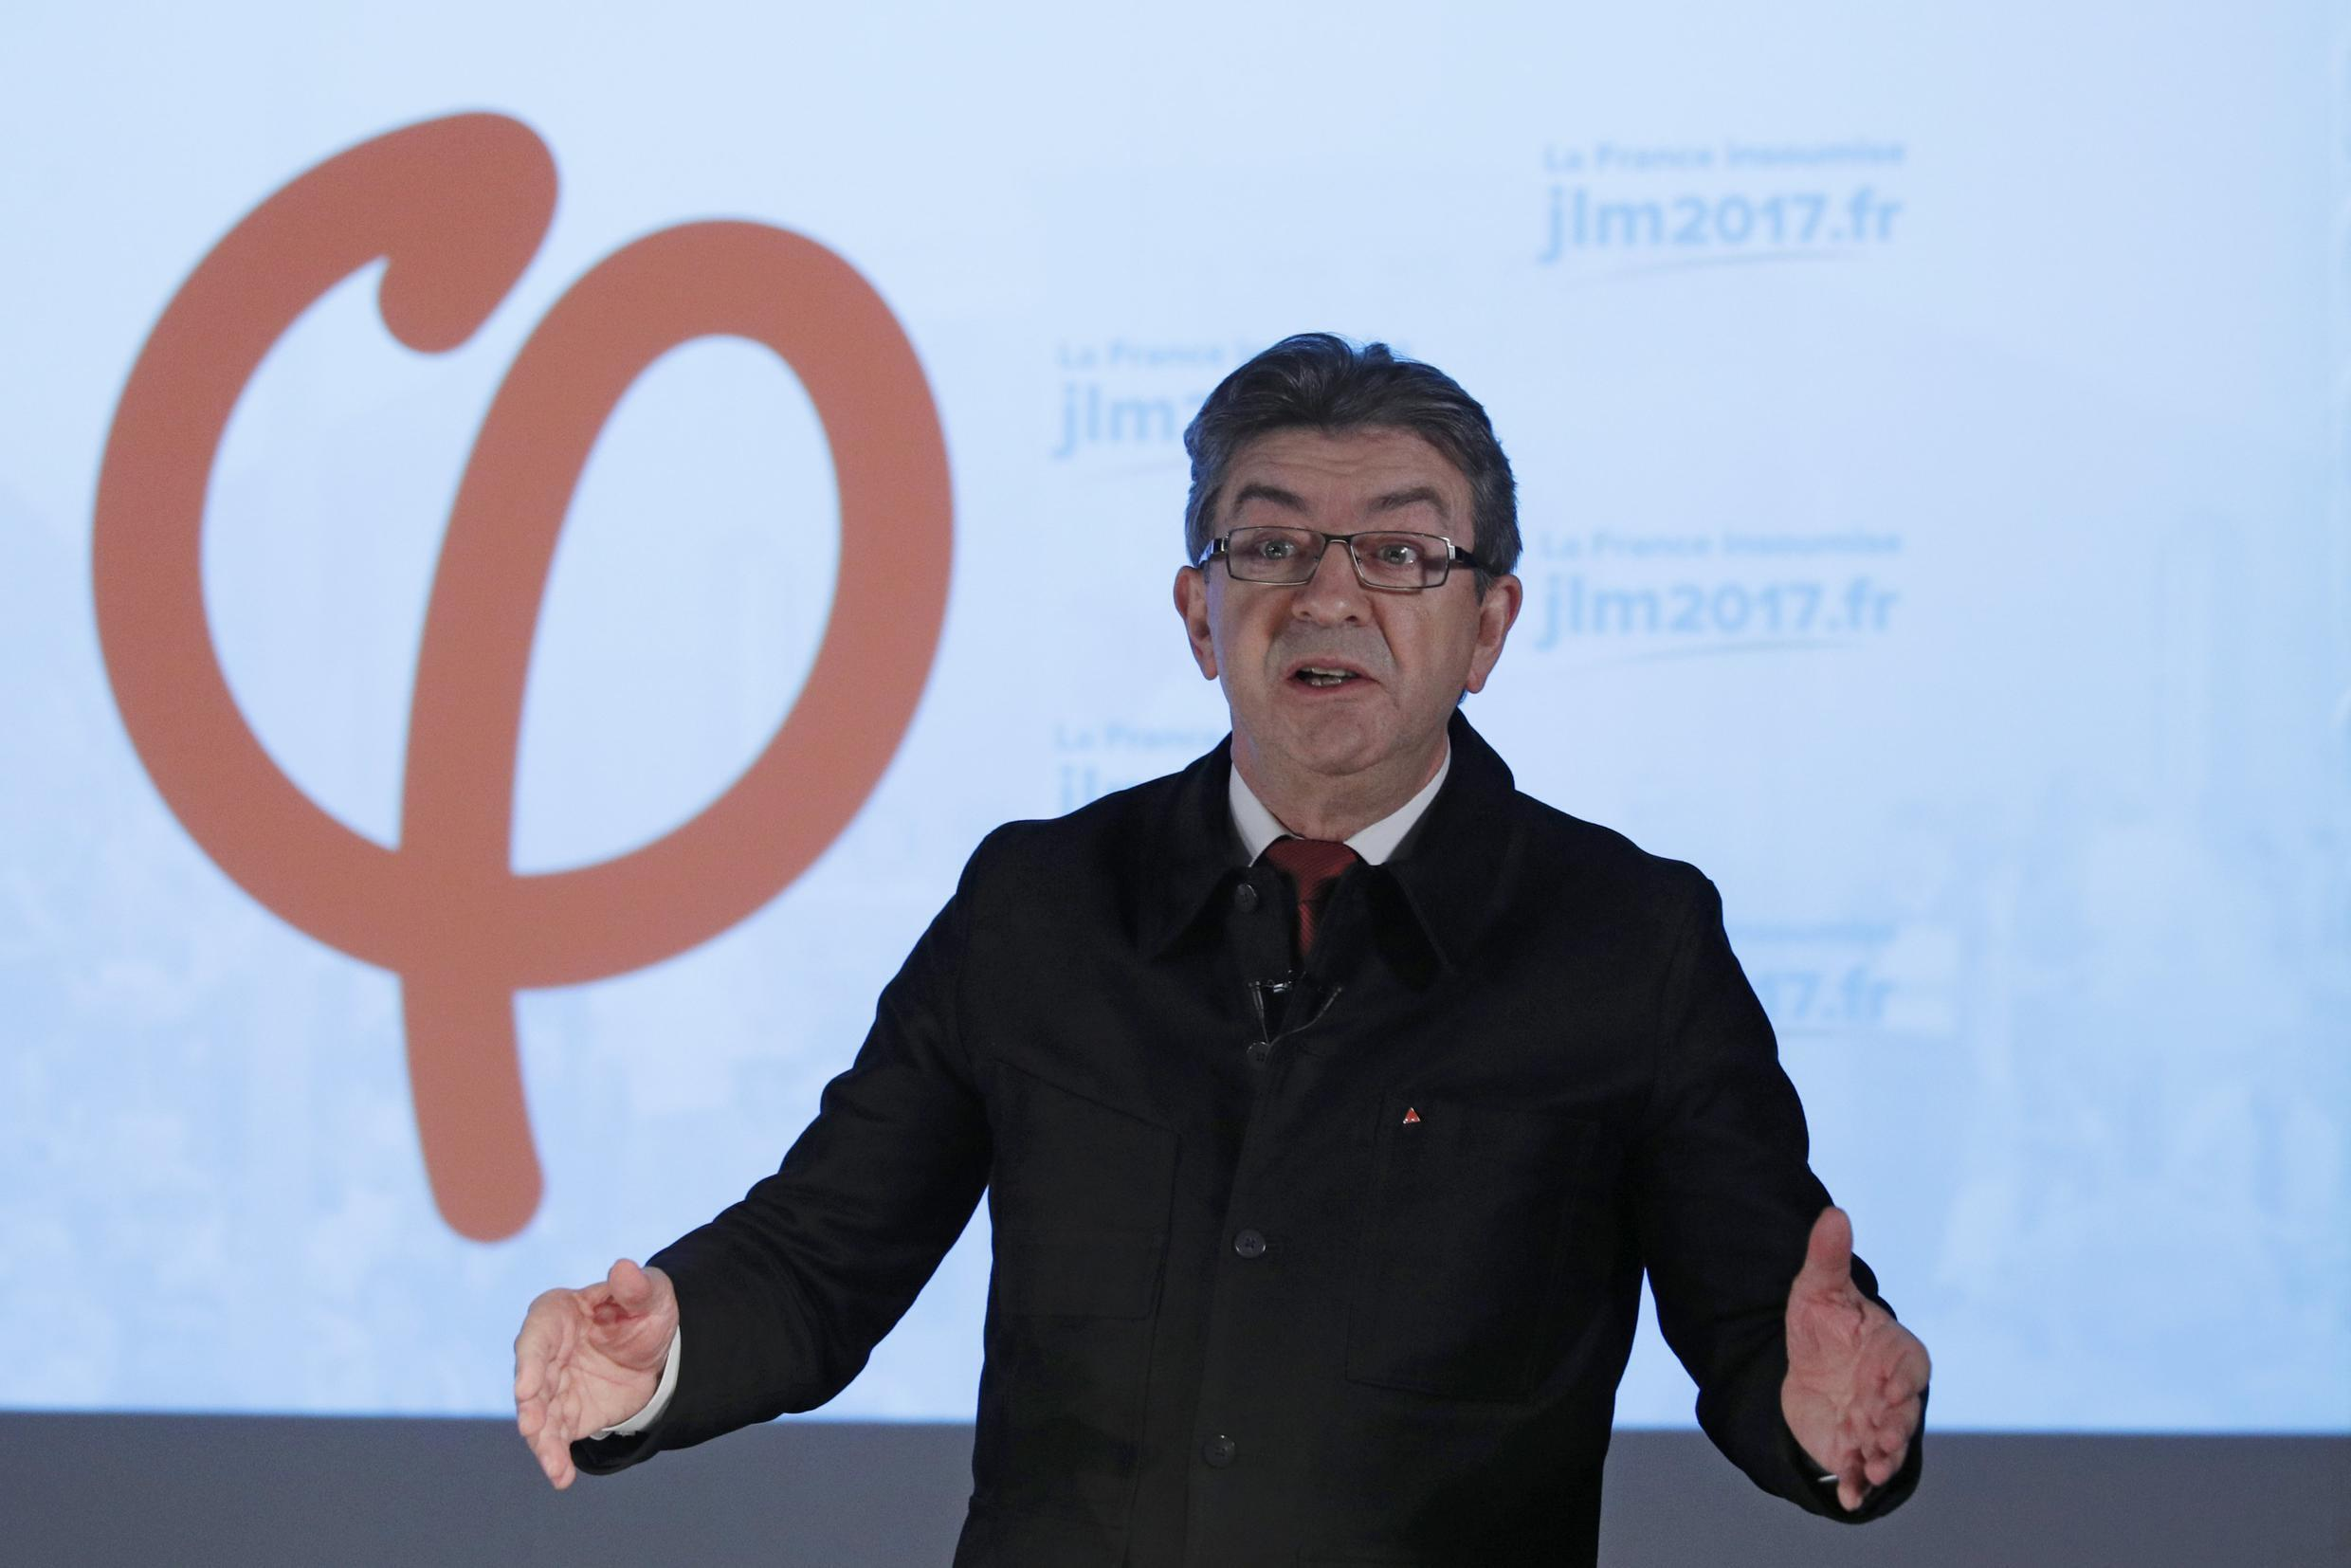 Jean-Luc Mélenchon, leader of the far-left party France Unbowed, in 2017